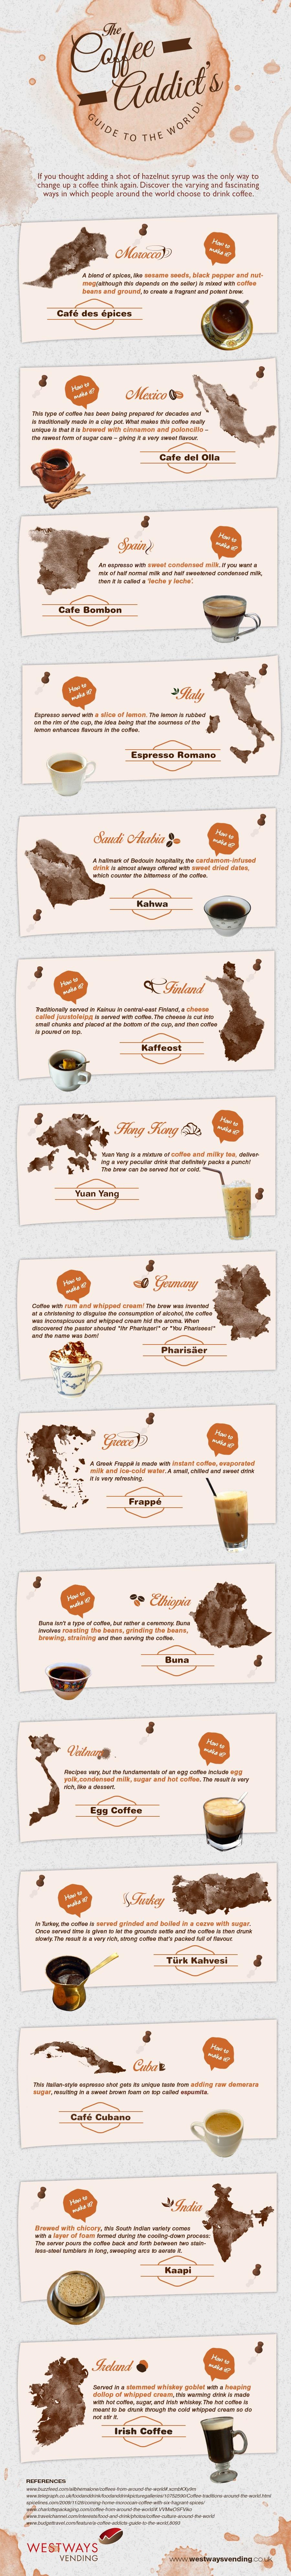 Coffees-of-the-World-Infographic